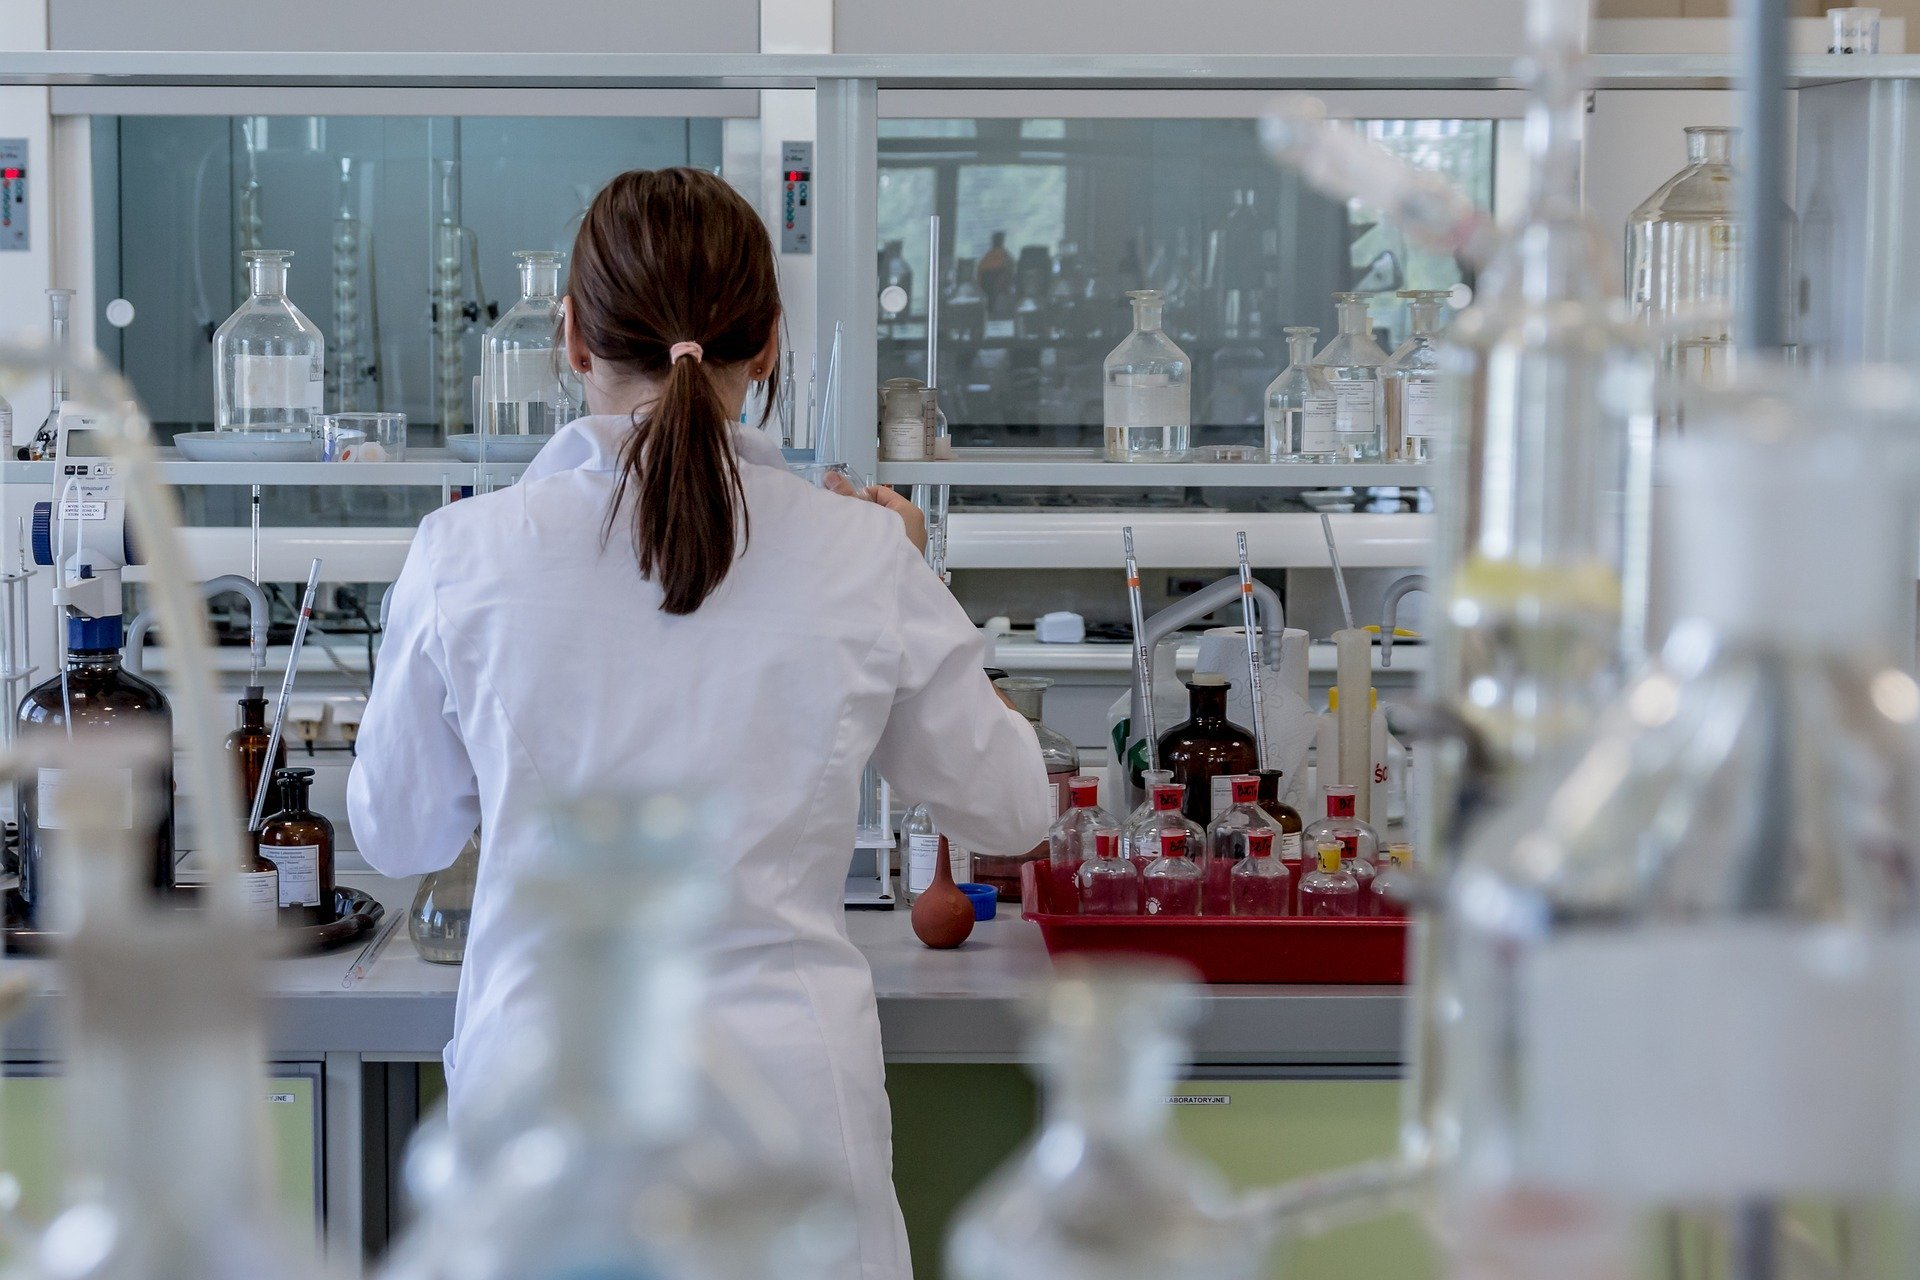 lady in chemistry laboratory analysing chemicals